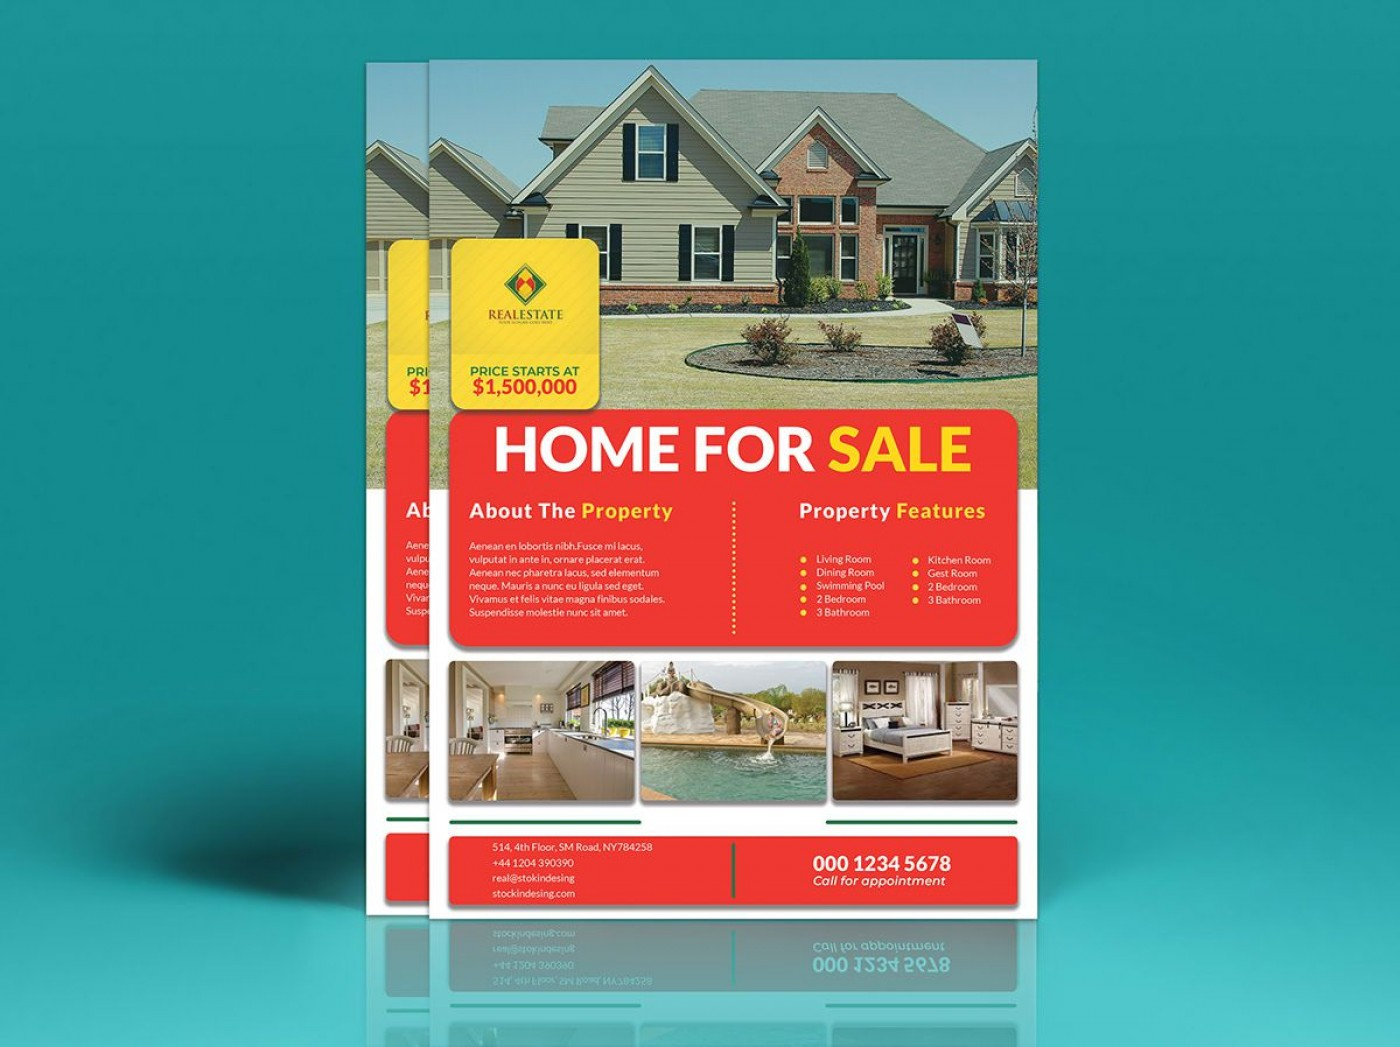 002 Fantastic House For Sale Flyer Template Highest Clarity  Free Real Estate Example By Owner1400